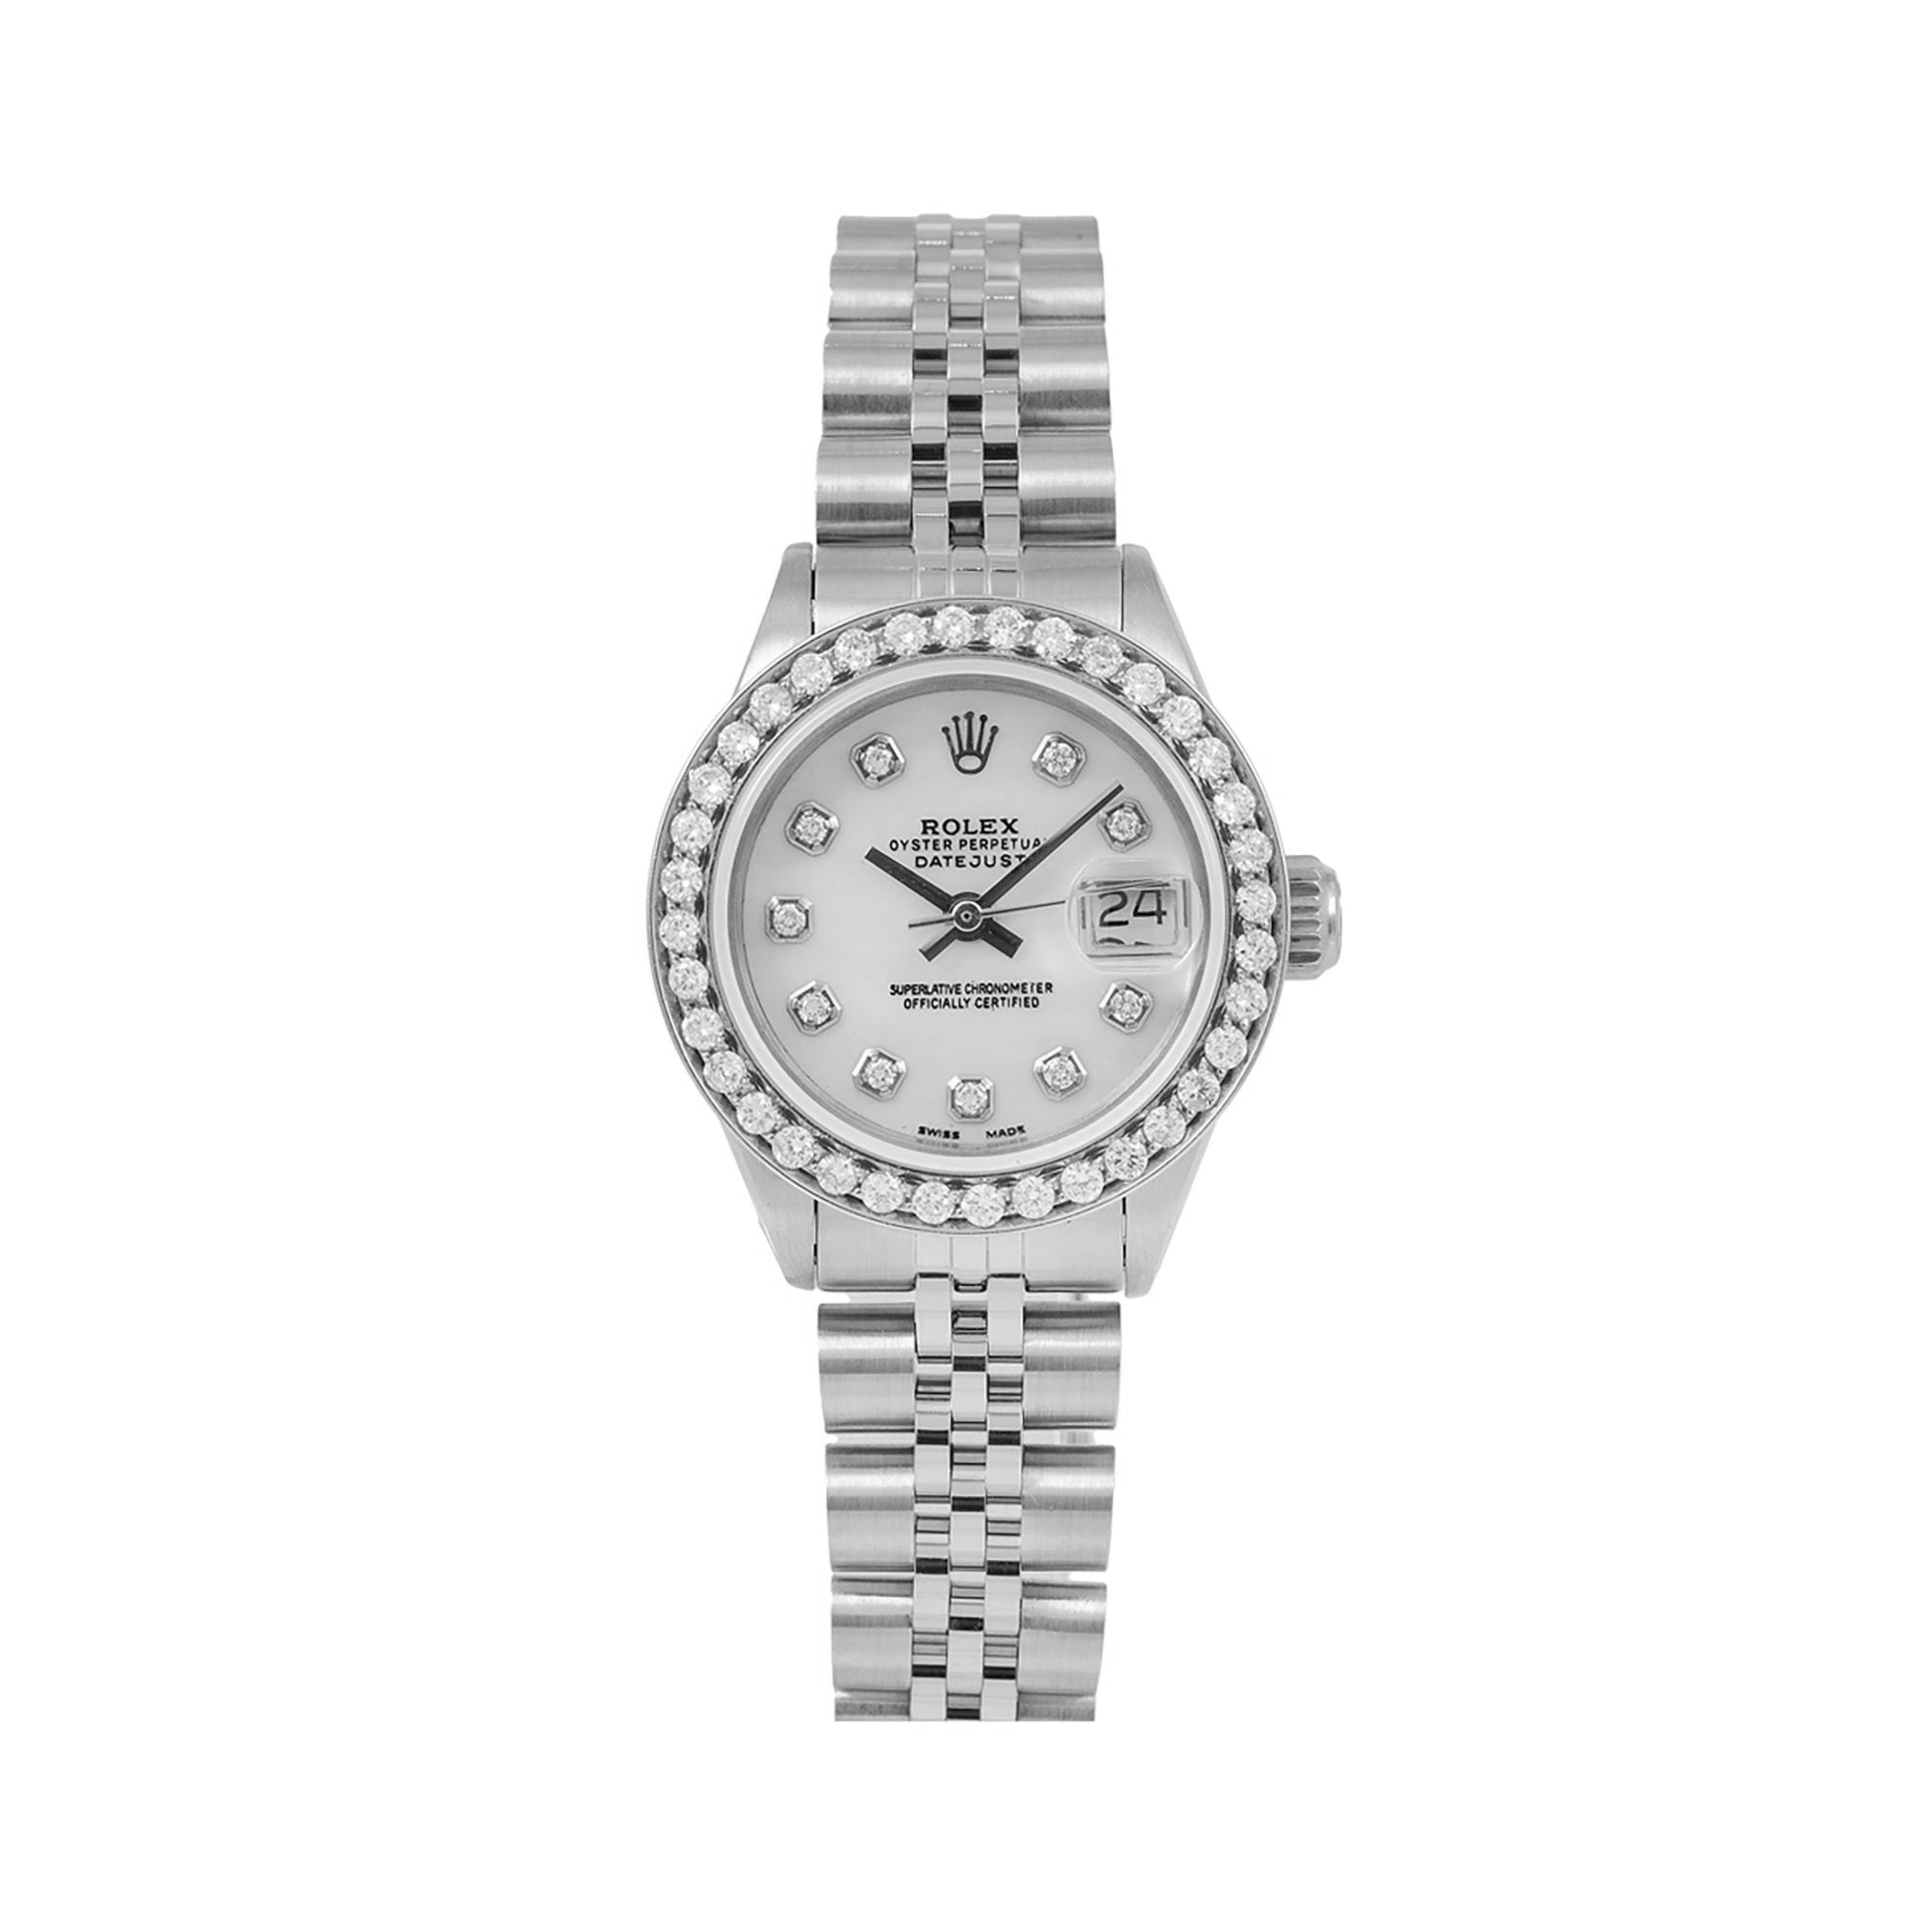 Rolex DateJust Diamond Watch 6924 26mm Silver Diamond Dial With 0.90 CT Diamonds